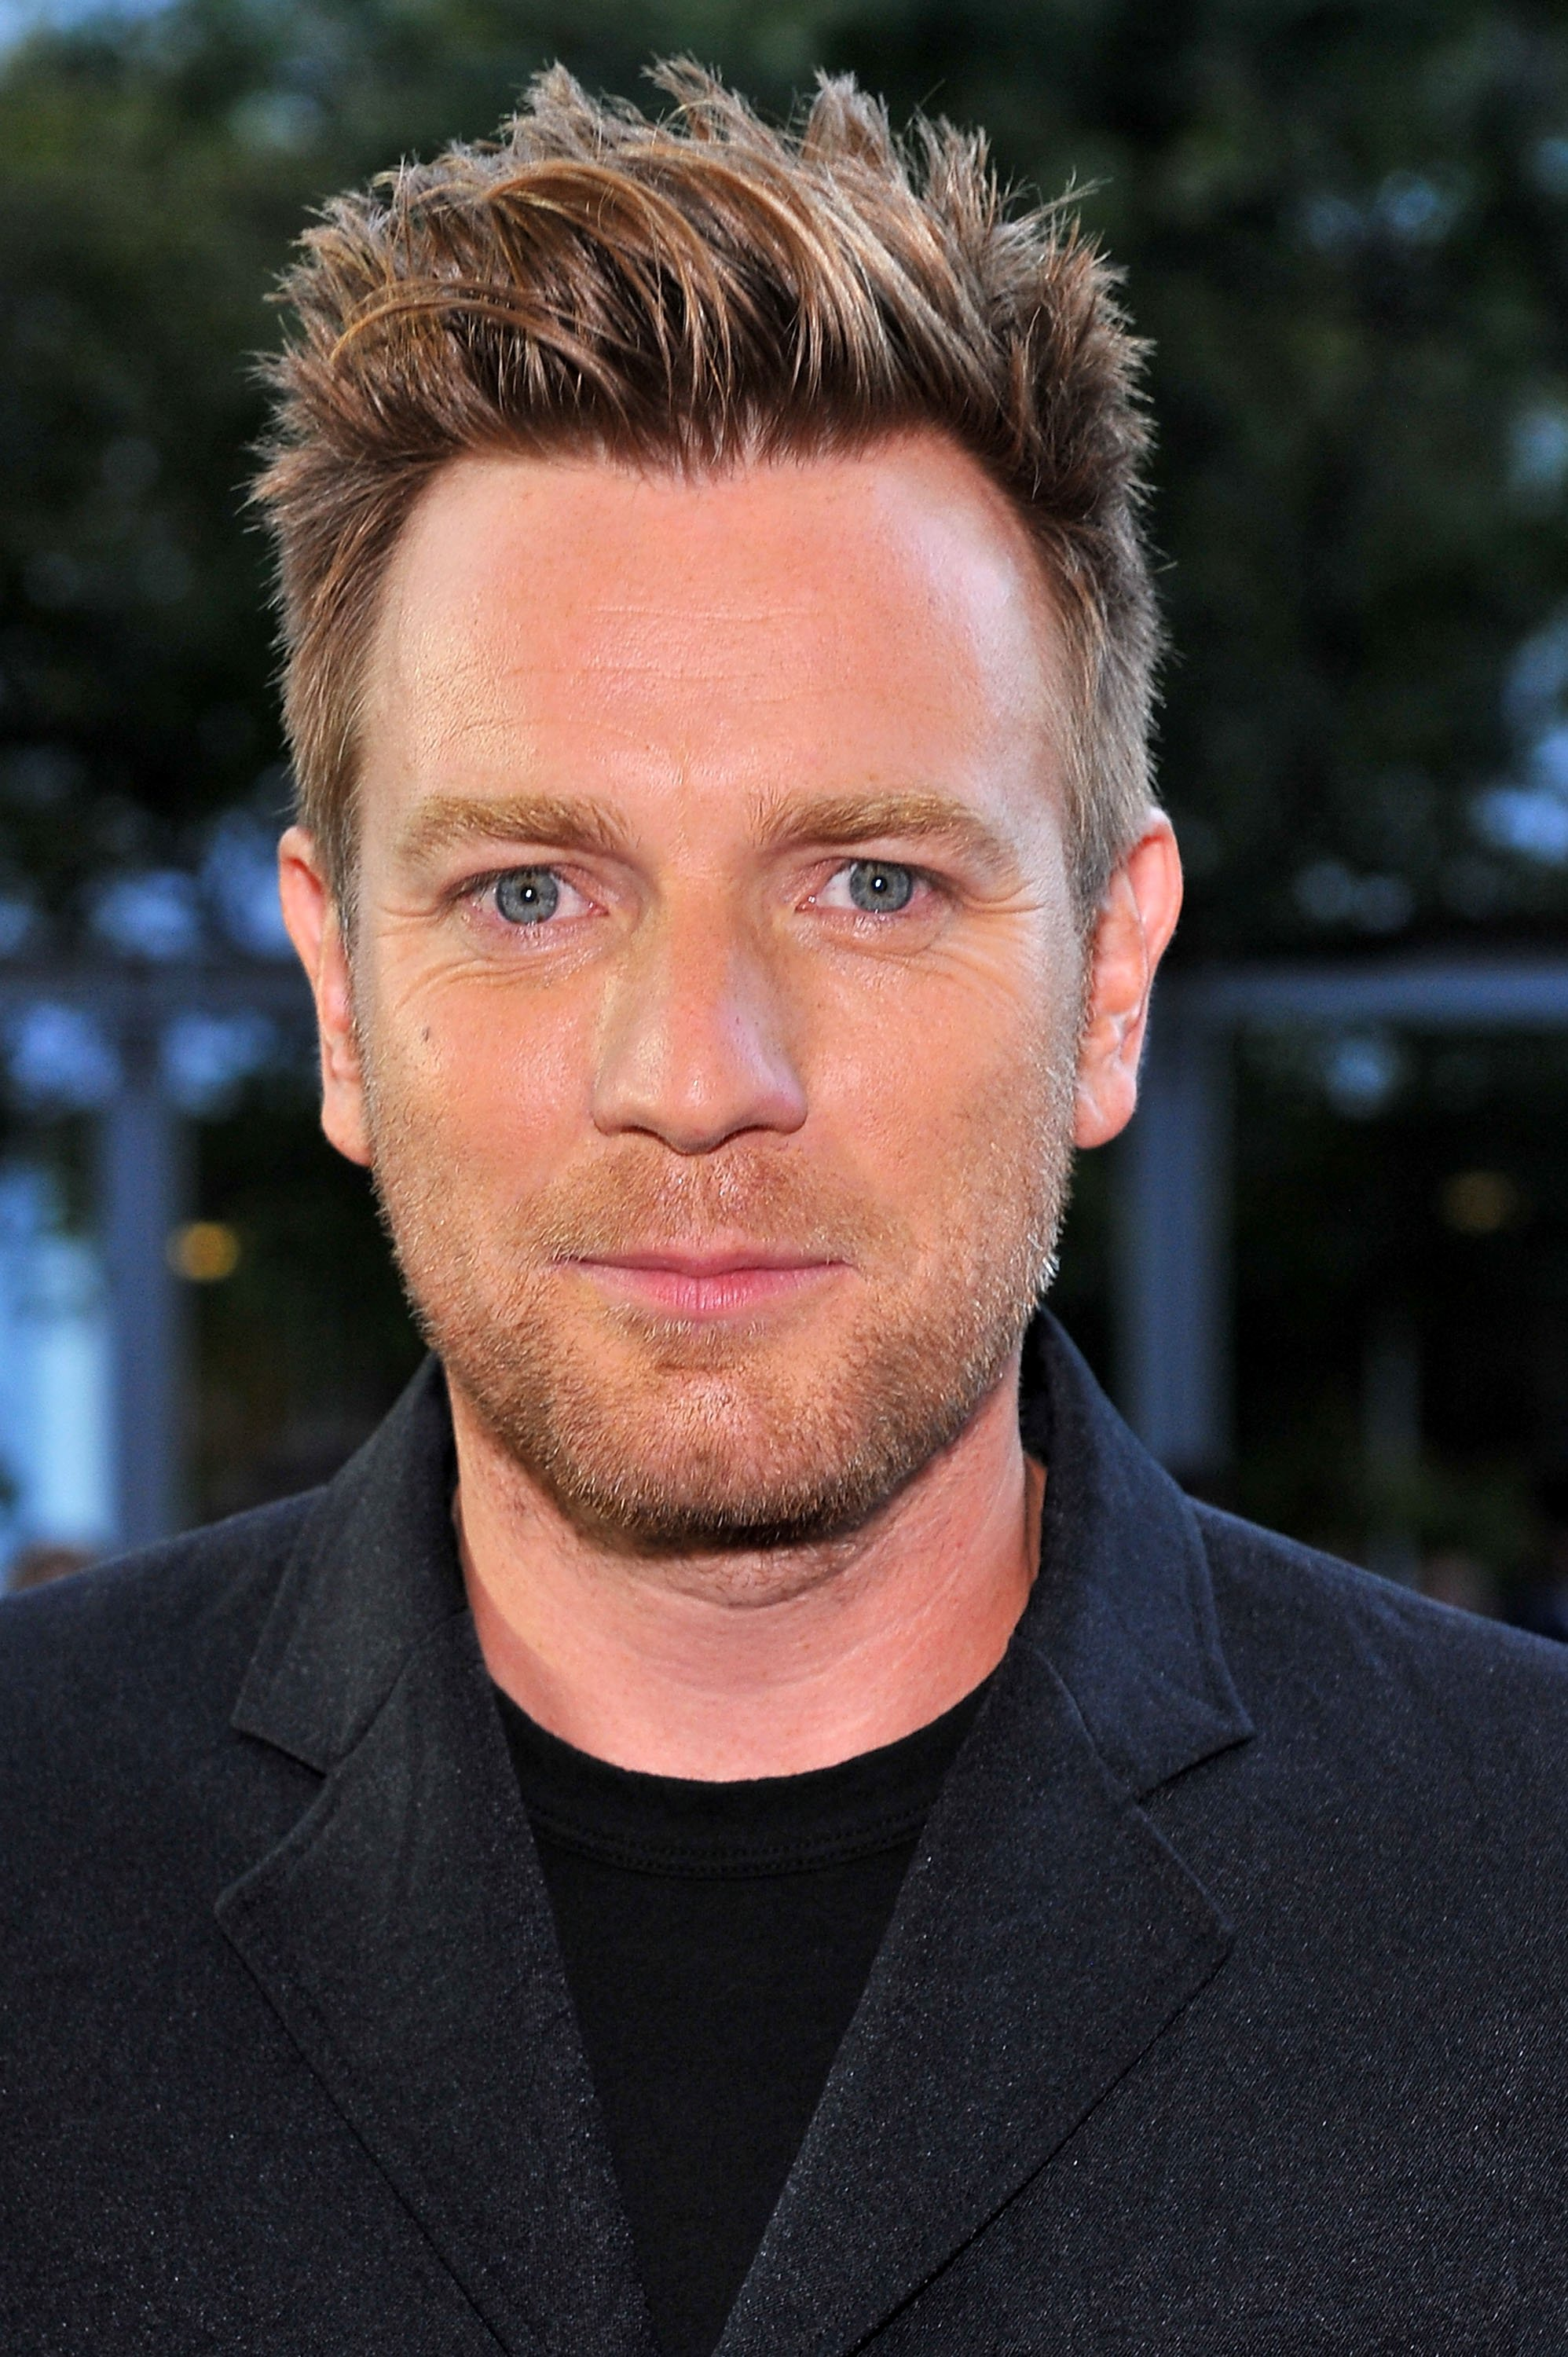 Auditioned for drama school and was accepted at londons guildhall school of music and drama with ewan mcgregor and